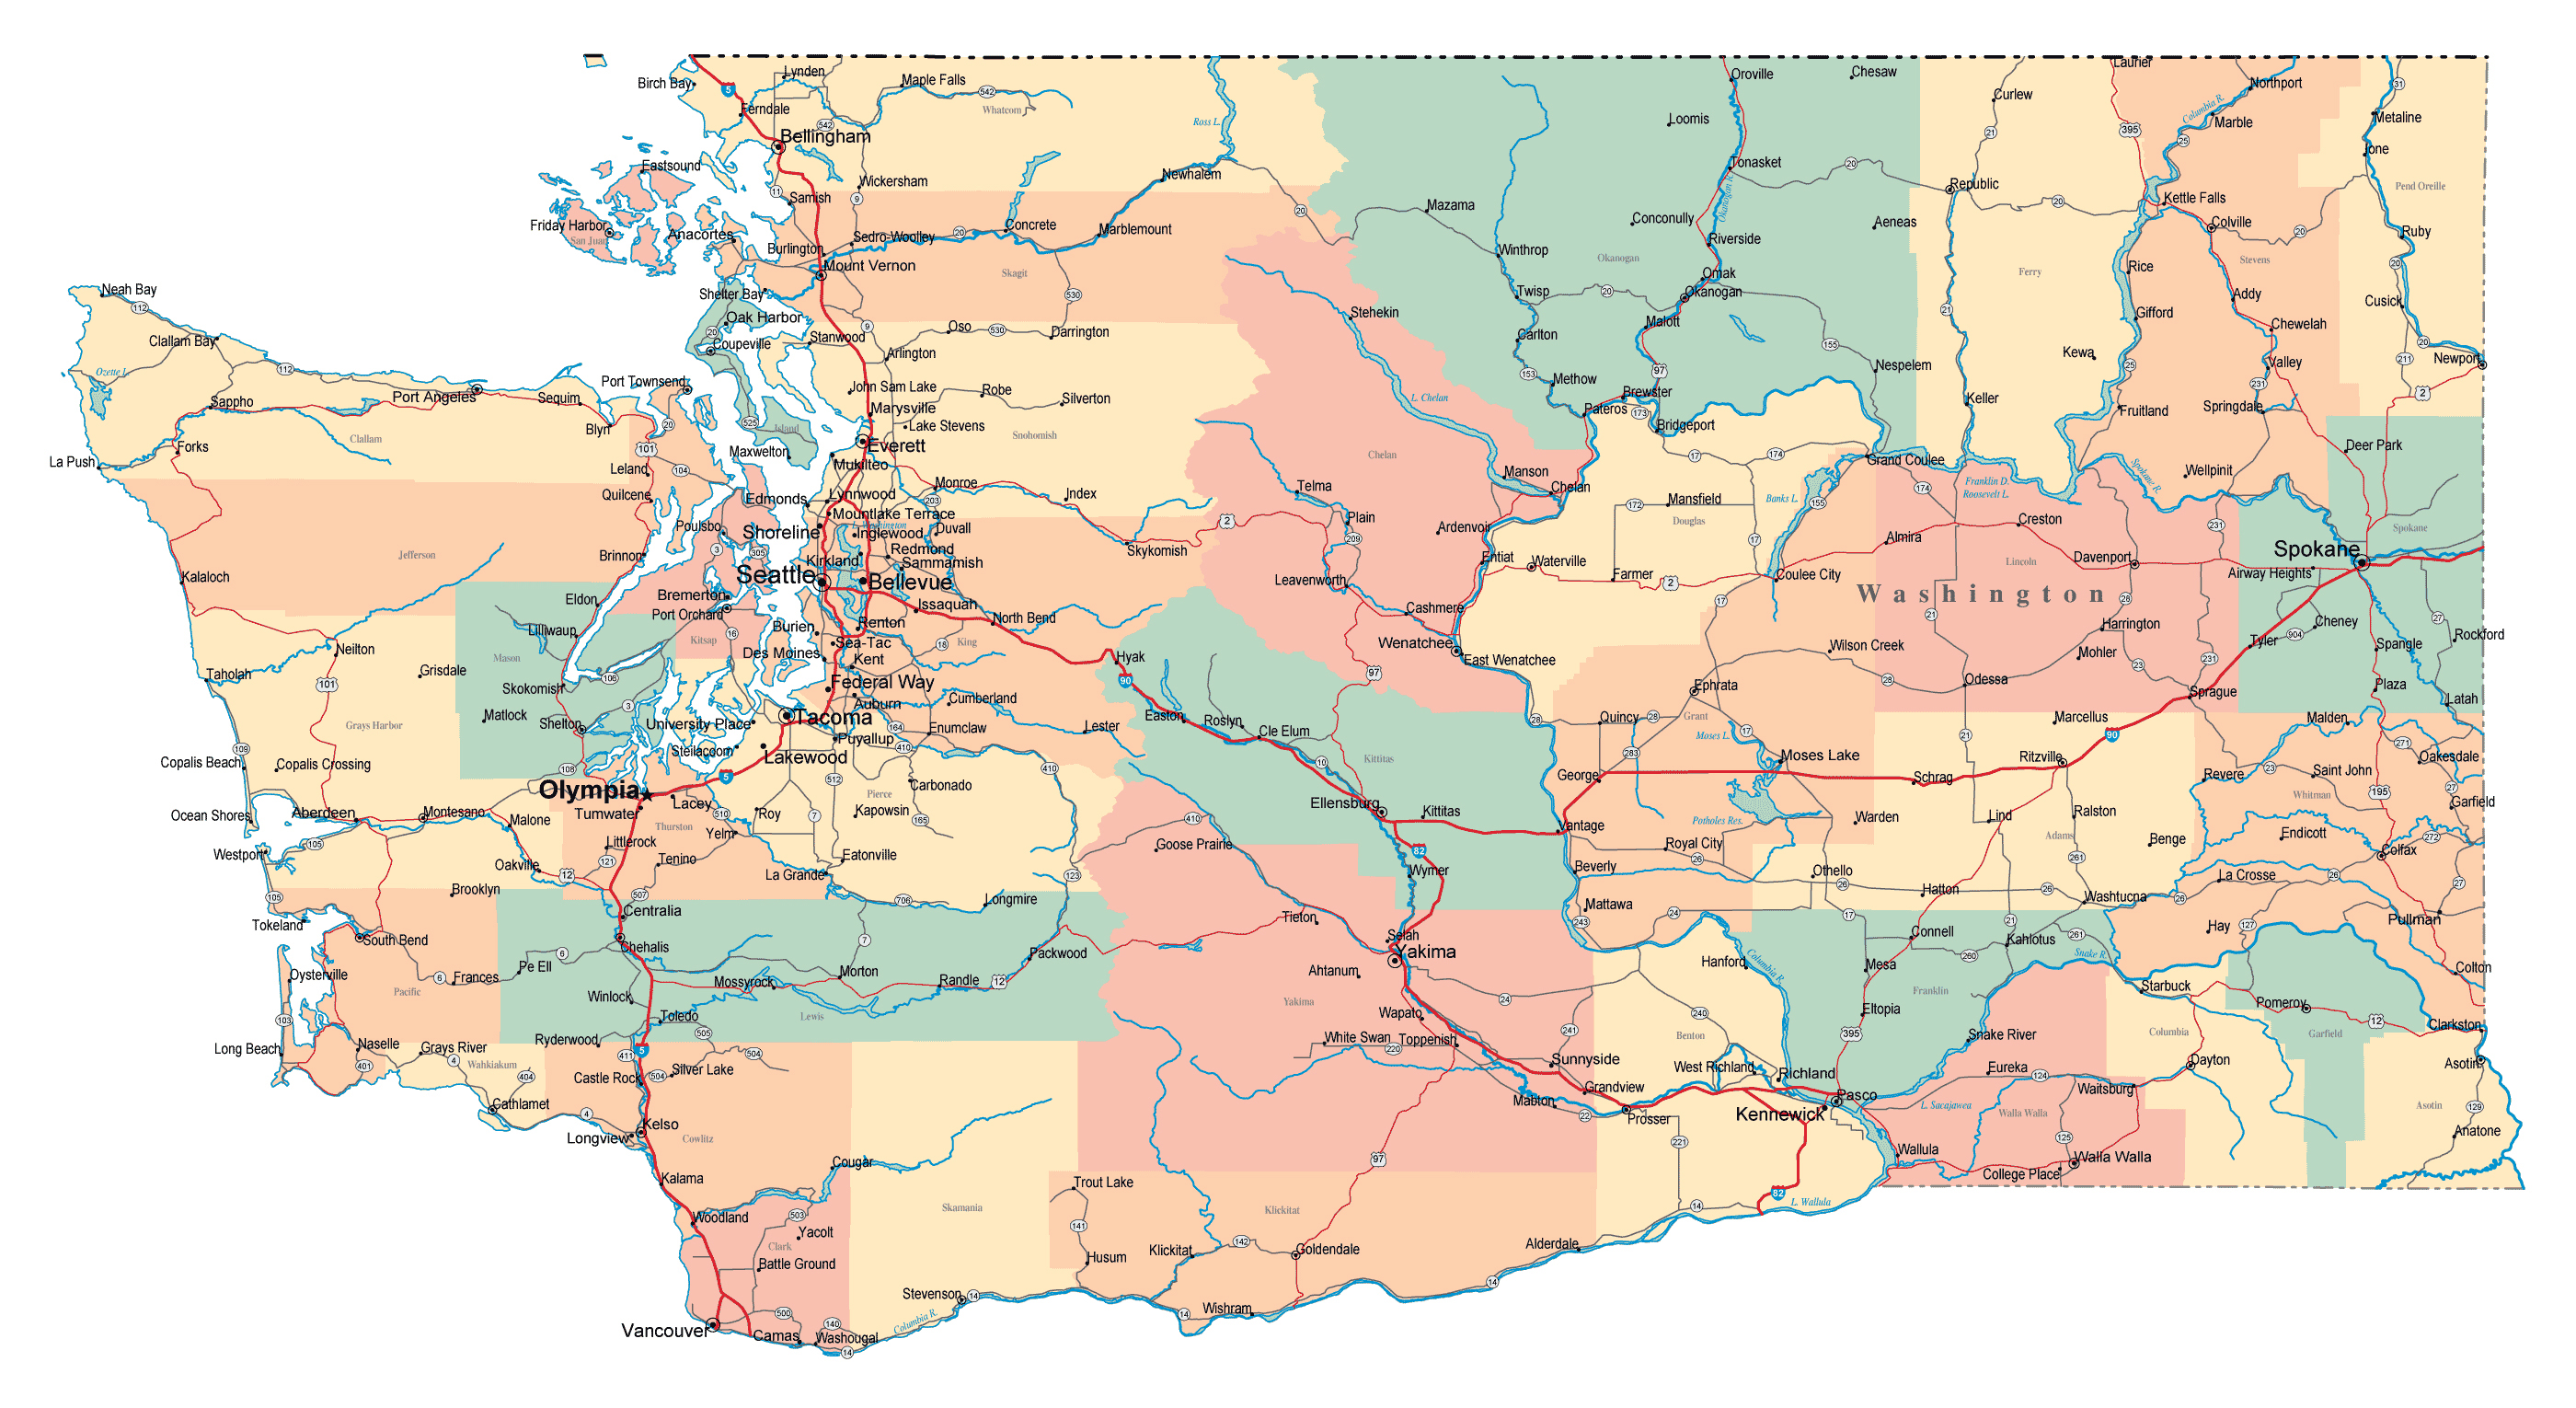 Picture of: Large Administrative Map Of Washington State With Roads Highways And Cities Washington State Usa Maps Of The Usa Maps Collection Of The United States Of America